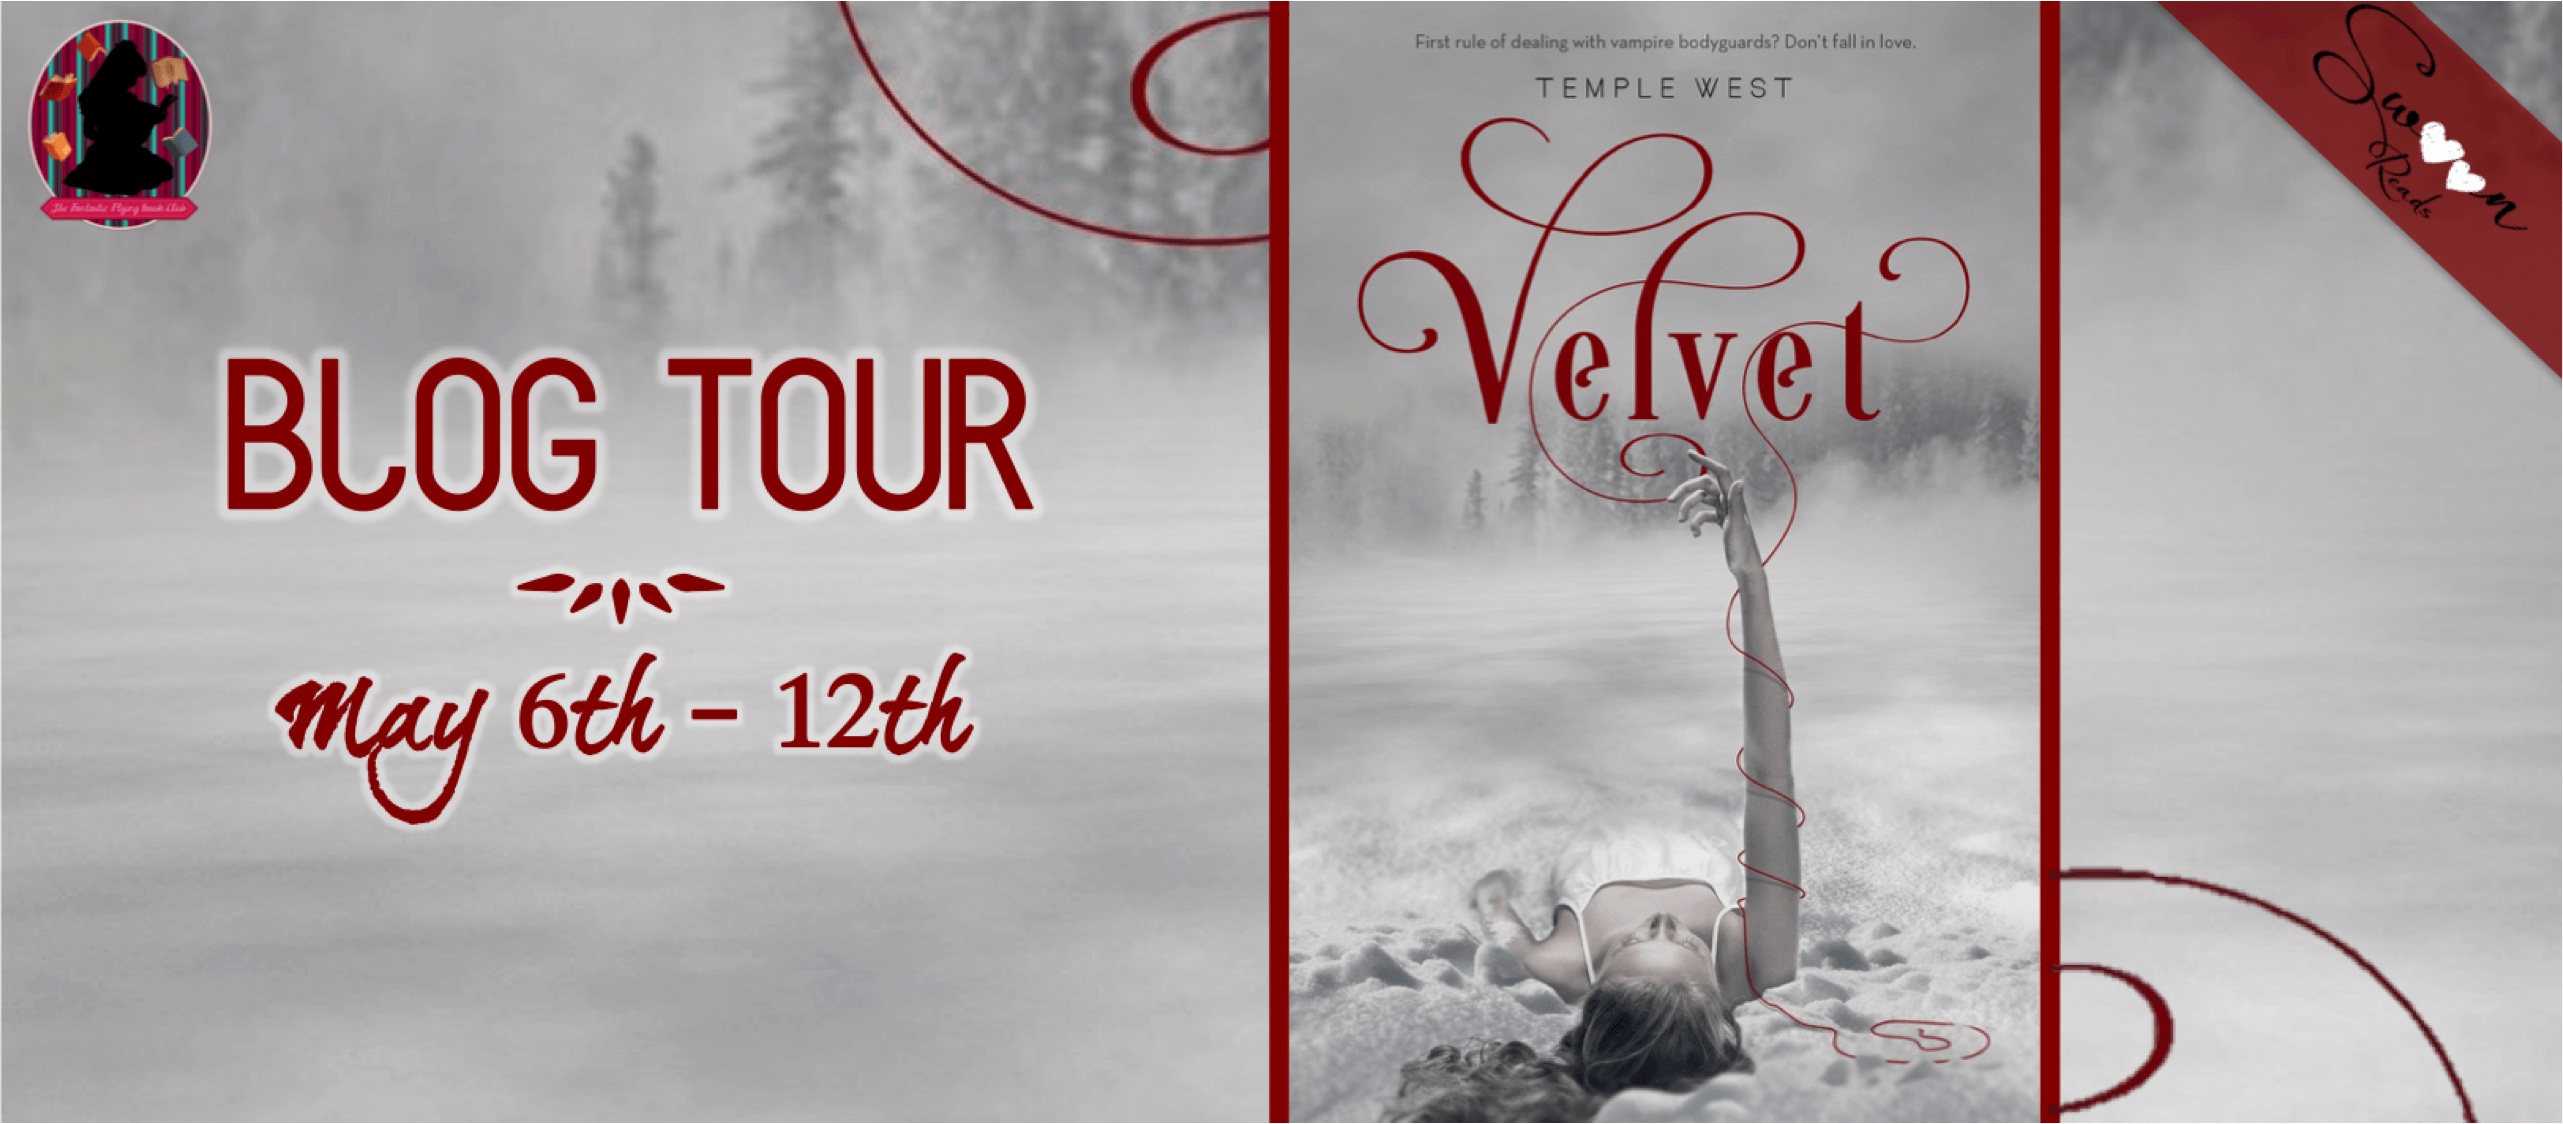 Early Review & Giveaway: Velvet by Temple West (Blog Tour)